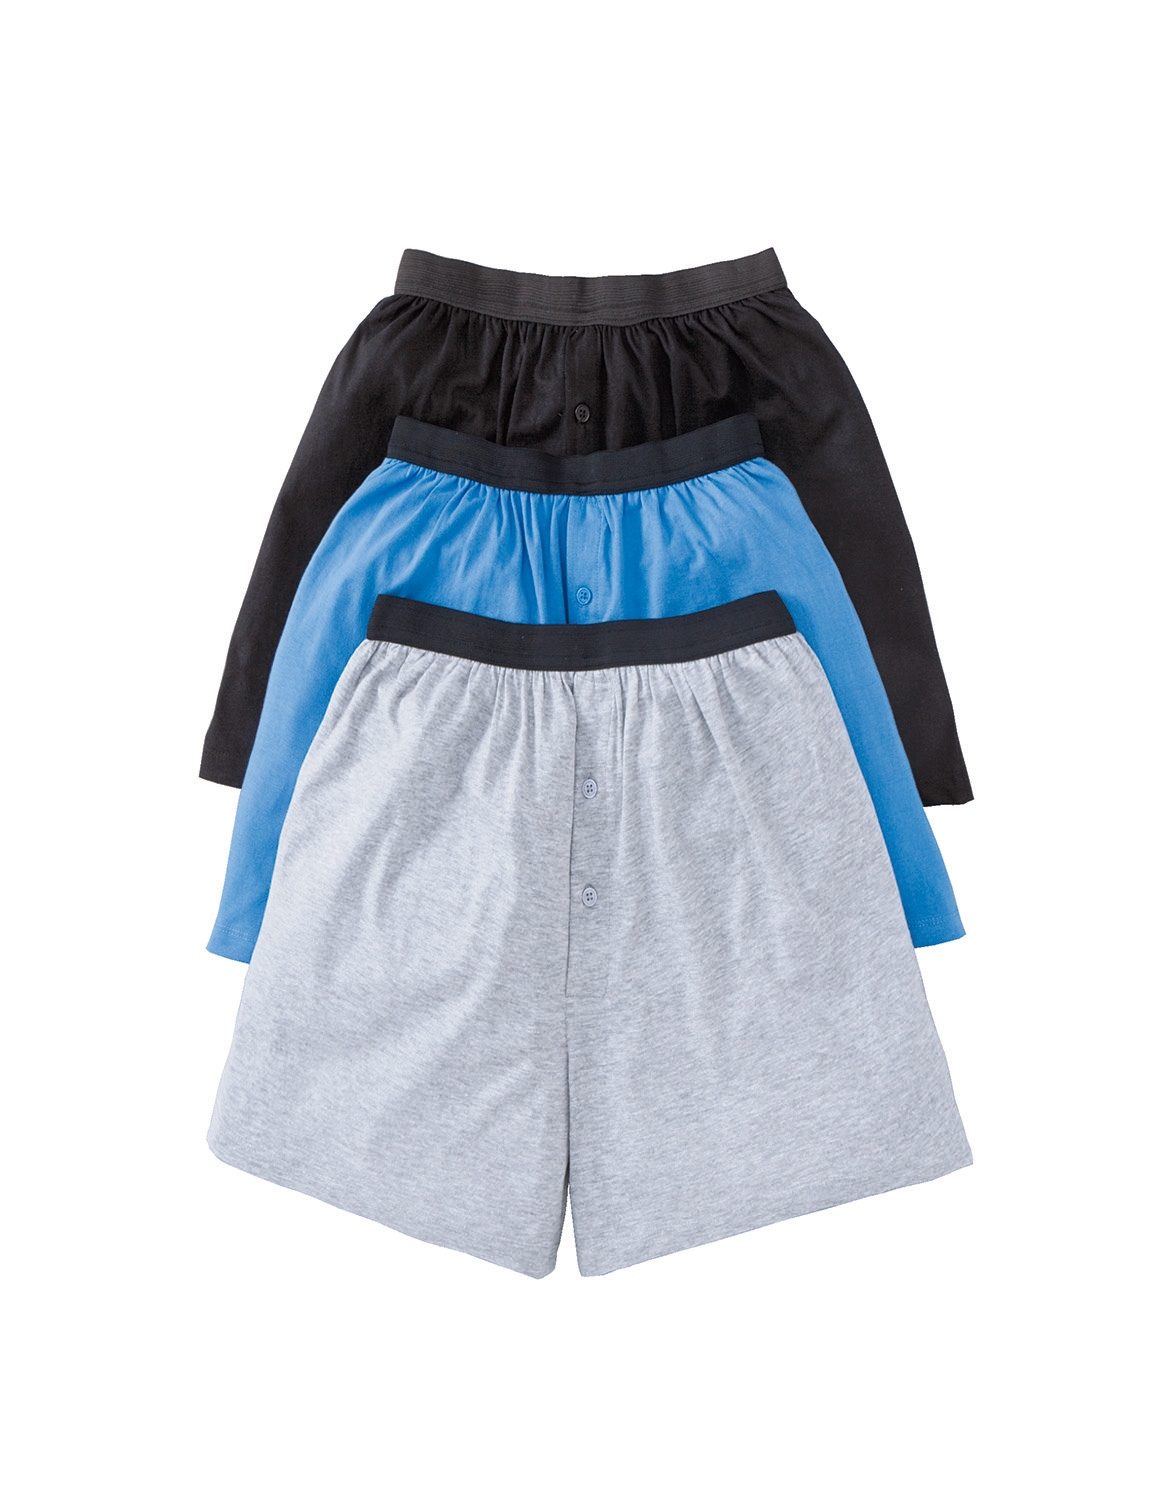 Choose stretch knit boxers or classic fit boxers in solid colors or patterns like stripes, plaid, American flag, camo, and superhero themes. When it comes to boys' knit boxers, you can shop brands that include Gap Kids, Puma, Fruit of the Loom, Calvin Klein, IZOD, Arizona, and Aeropostale.